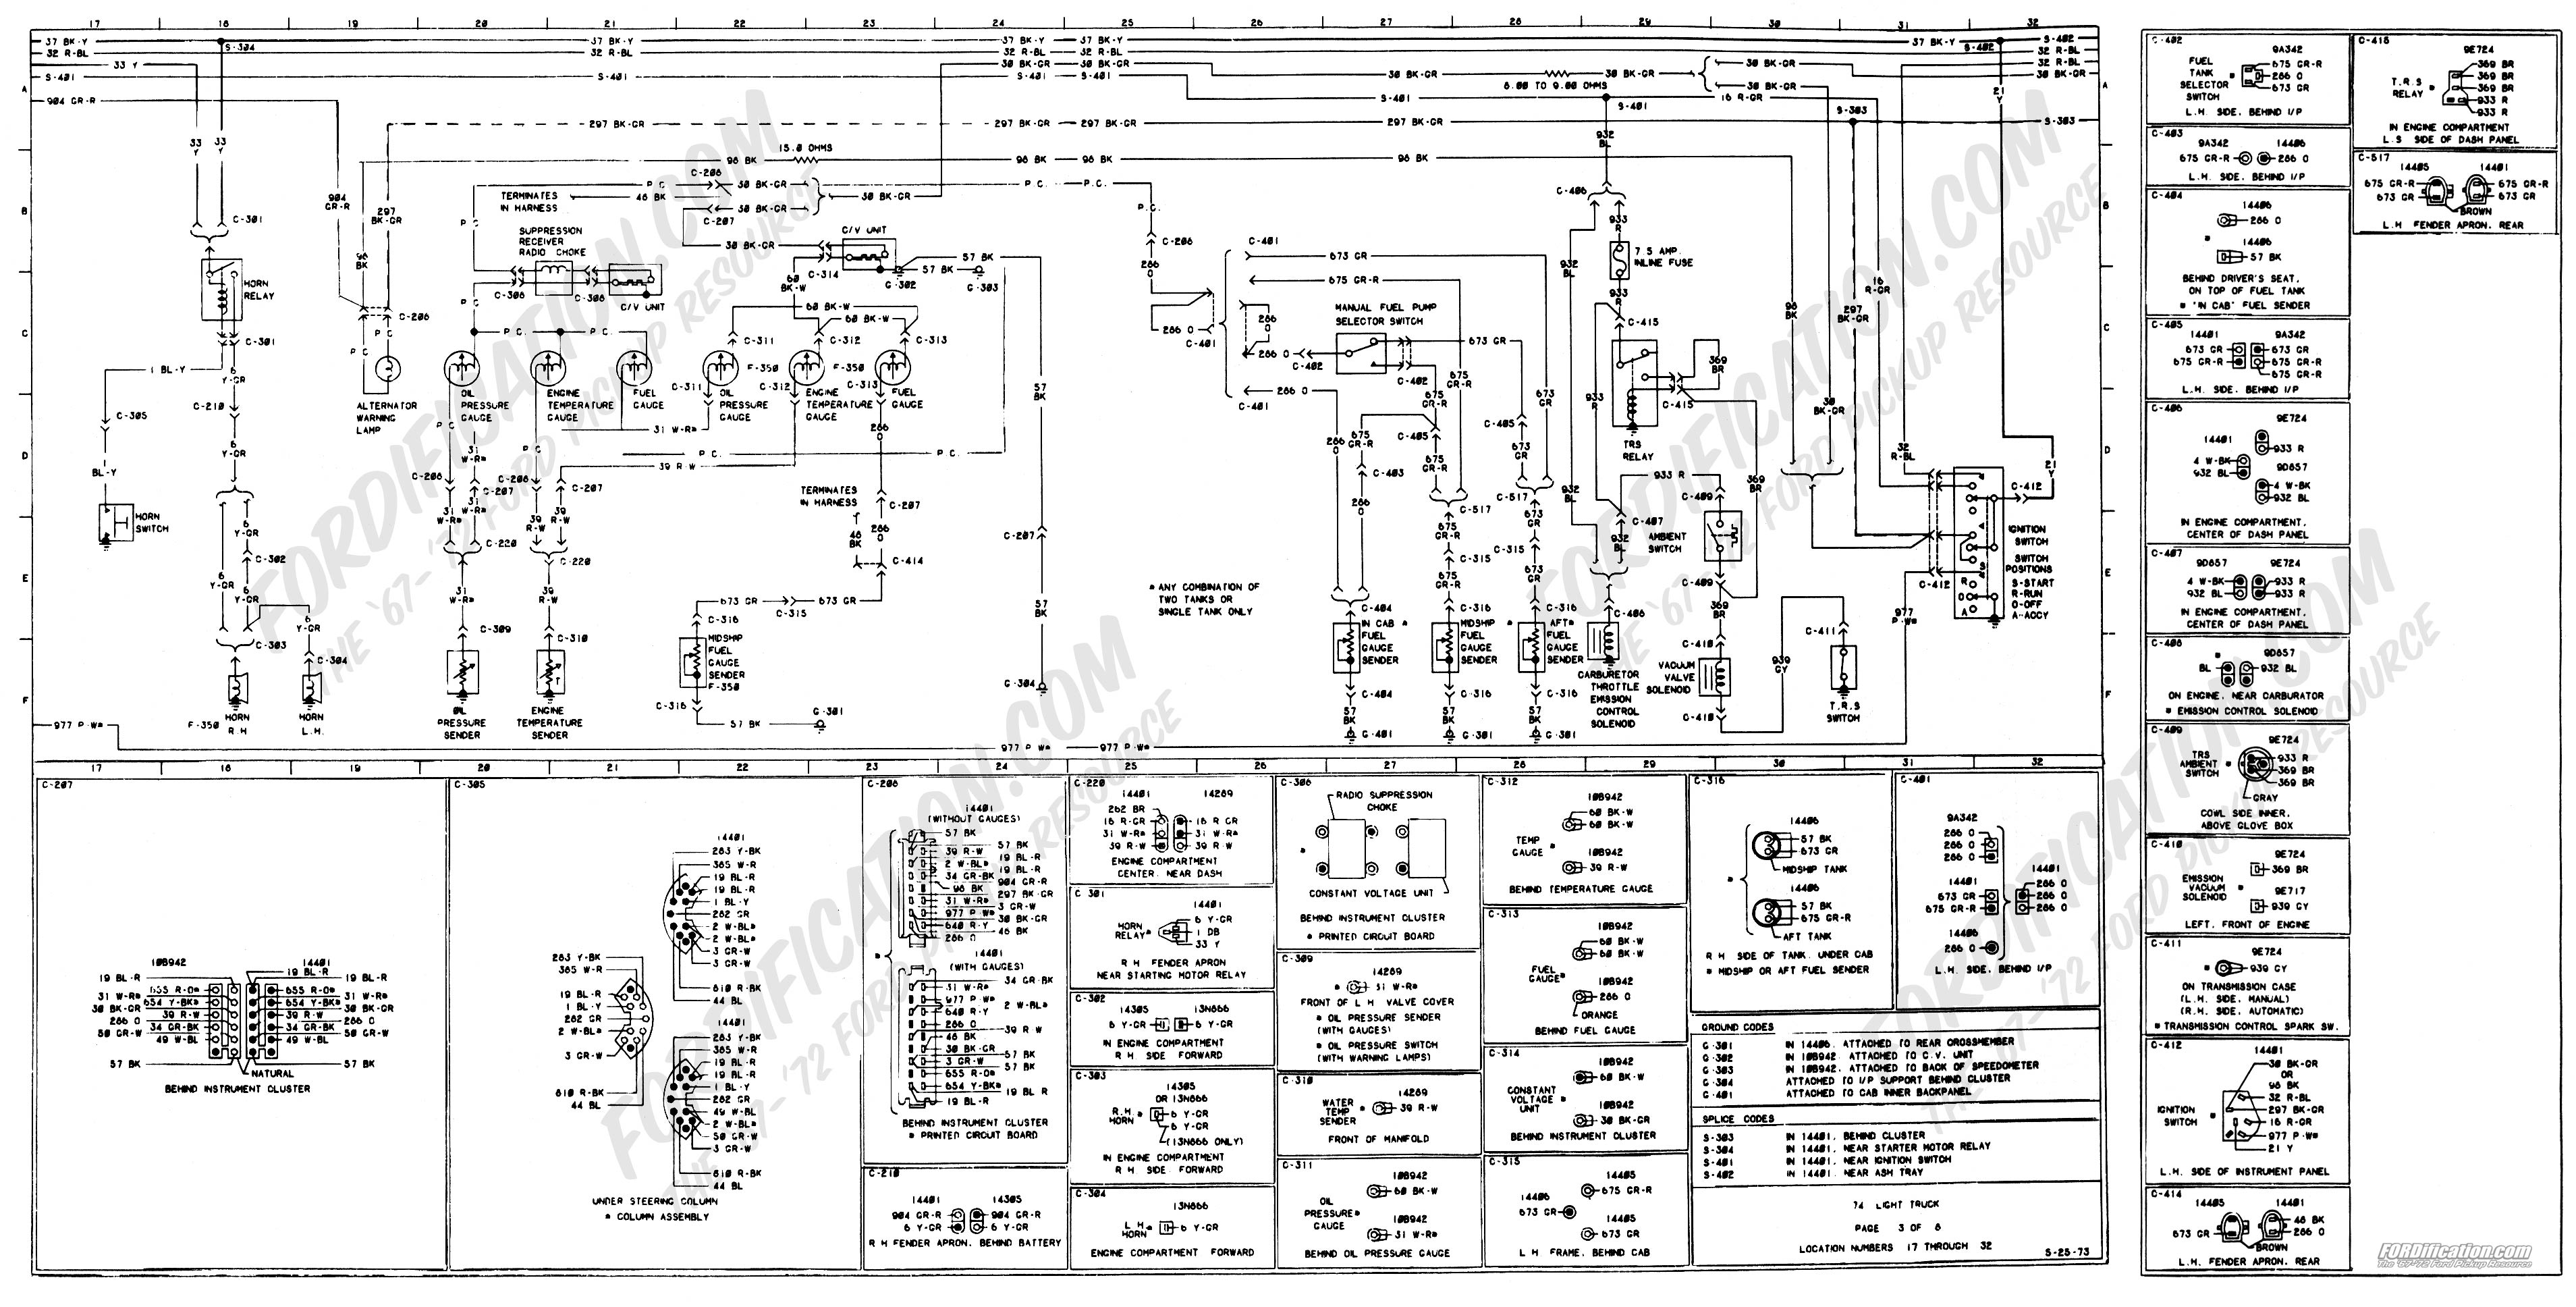 wiring_74master_3of8 1973 1979 ford truck wiring diagrams & schematics fordification net 1979 ford bronco fuse box diagram at nearapp.co